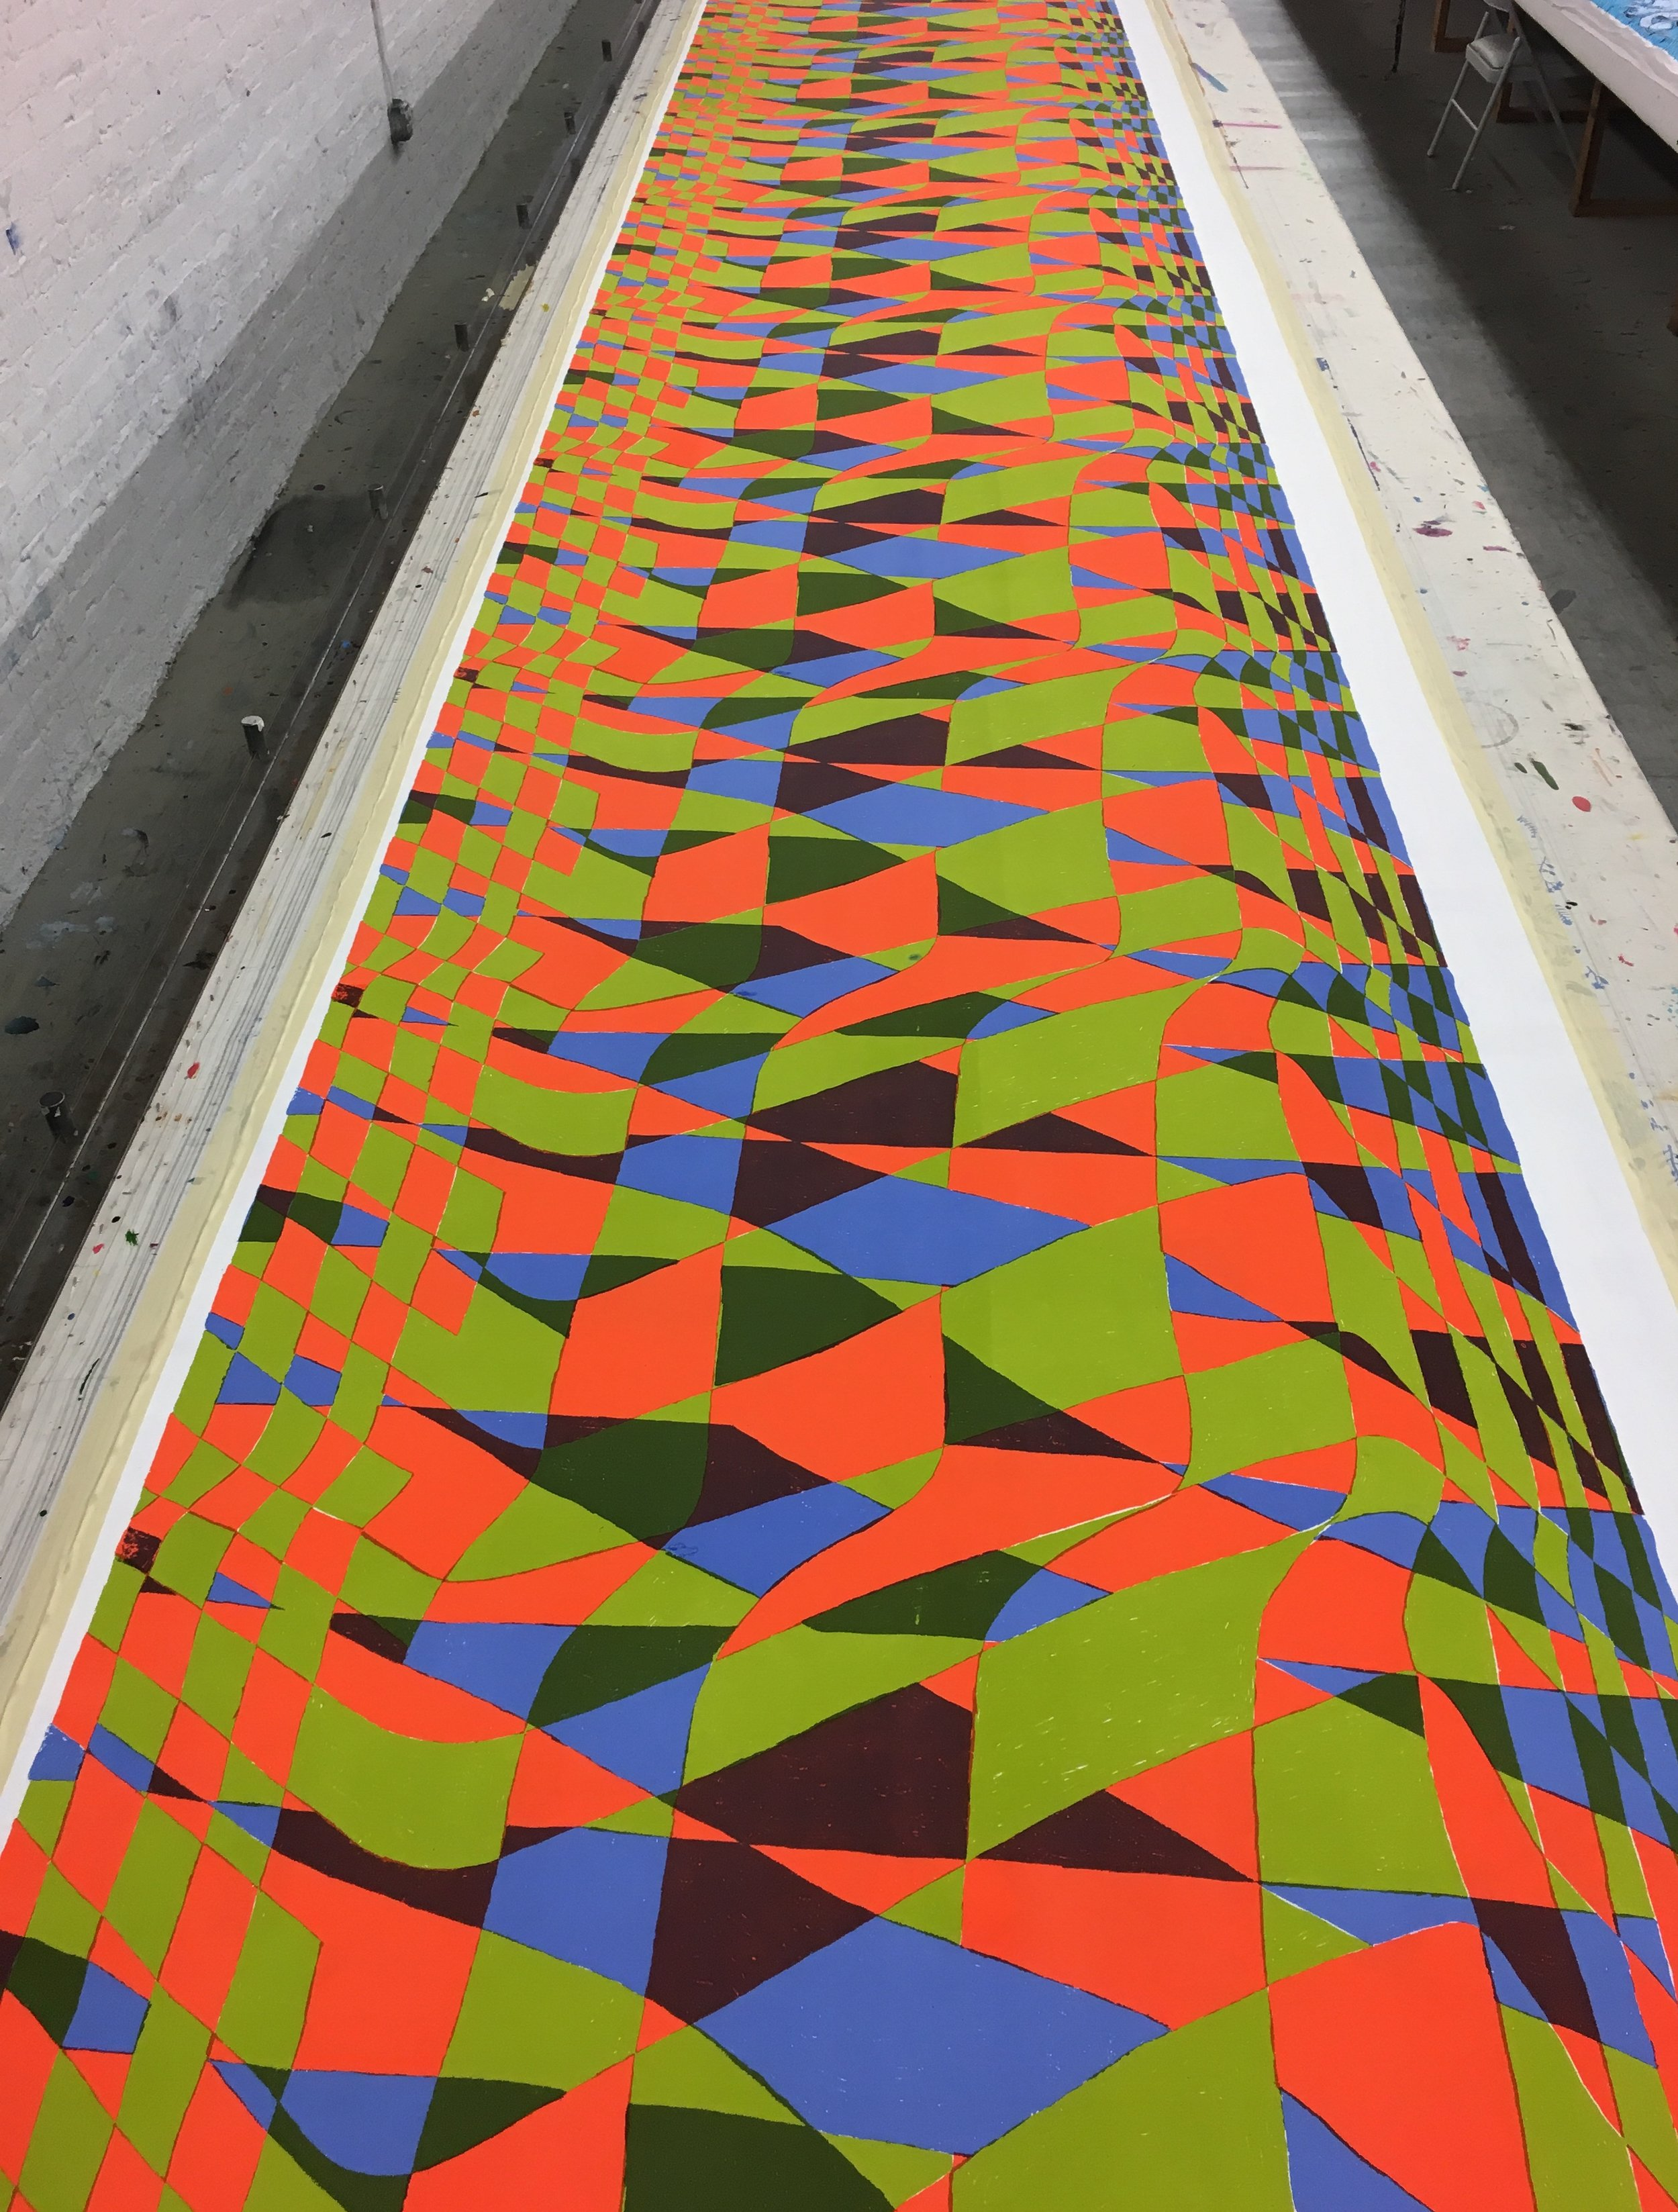 2018 Screenprint on cotton Final yardage for Apprenticeship at The Fabric Workshop & Museum